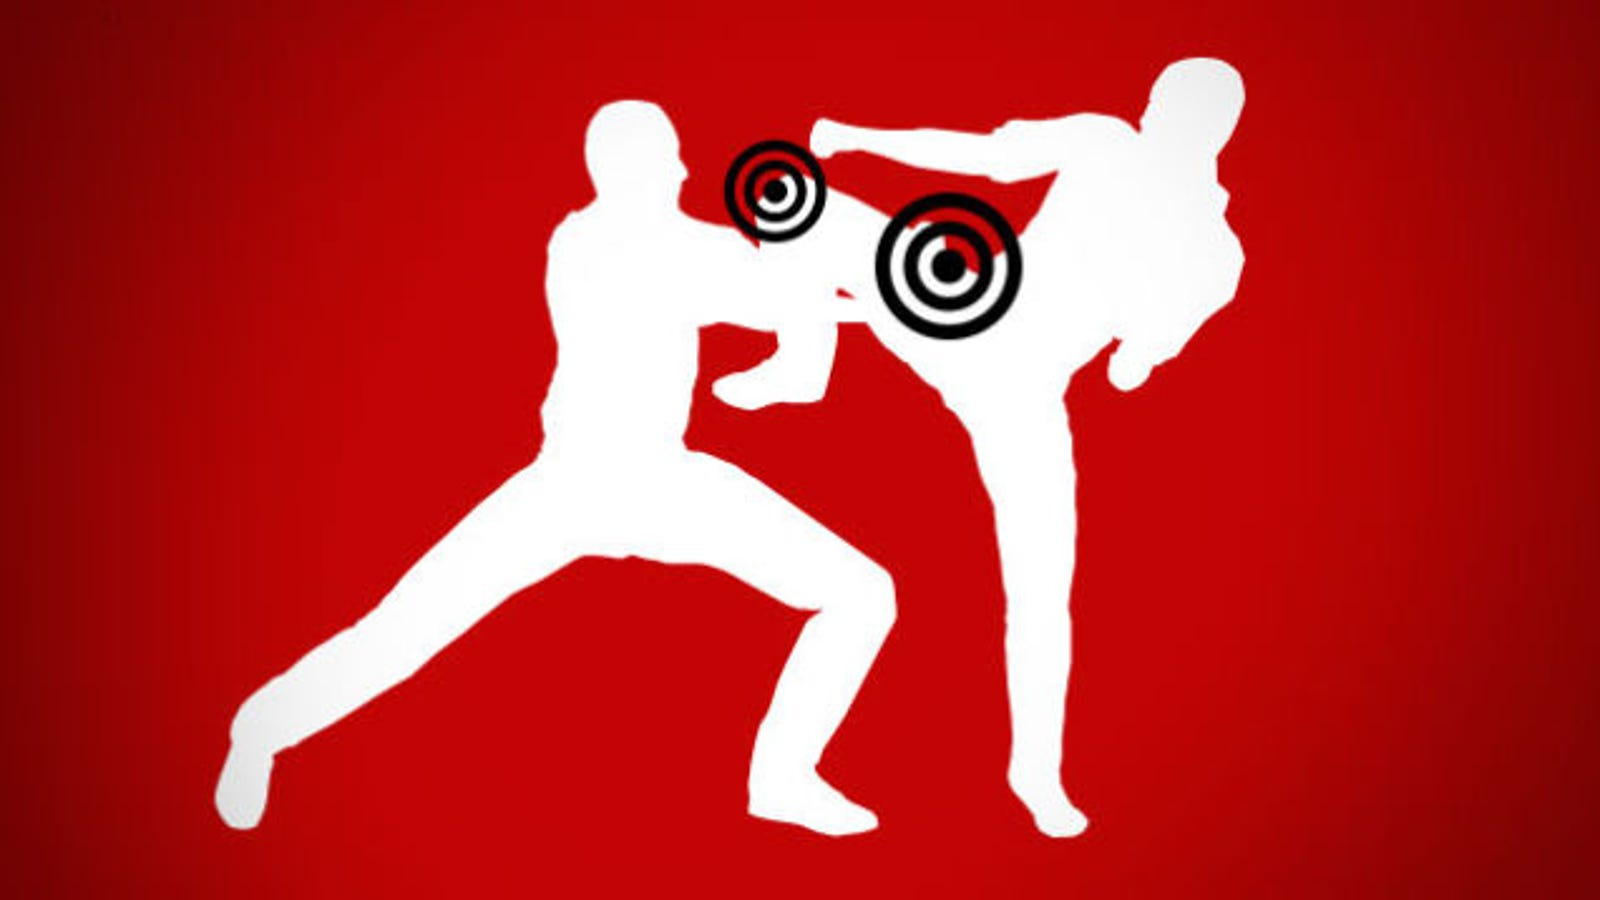 10 Reasons Why You Should Study Martial Arts - The MMA Guru